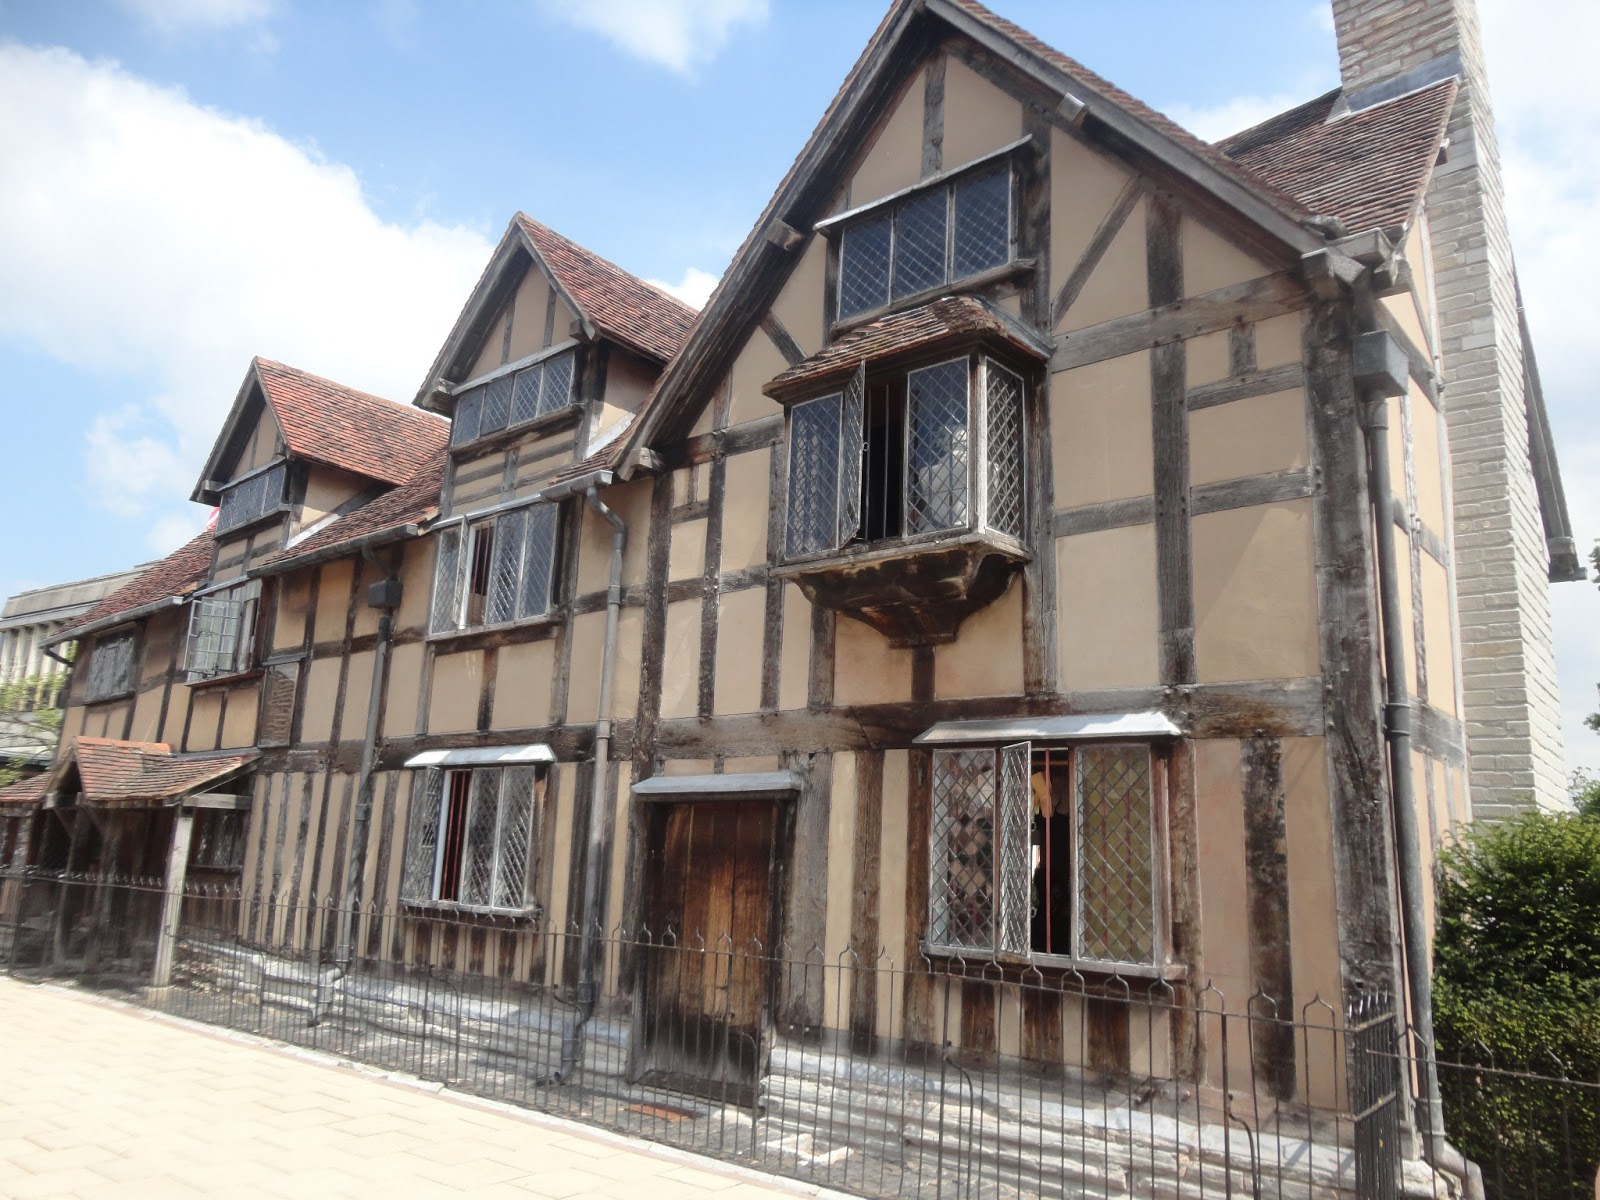 Starting From The Beginning William Shakespeares Birthplace Stood Before Me Born In 1564 Warwickshire Town Of Stratford Upon Avon